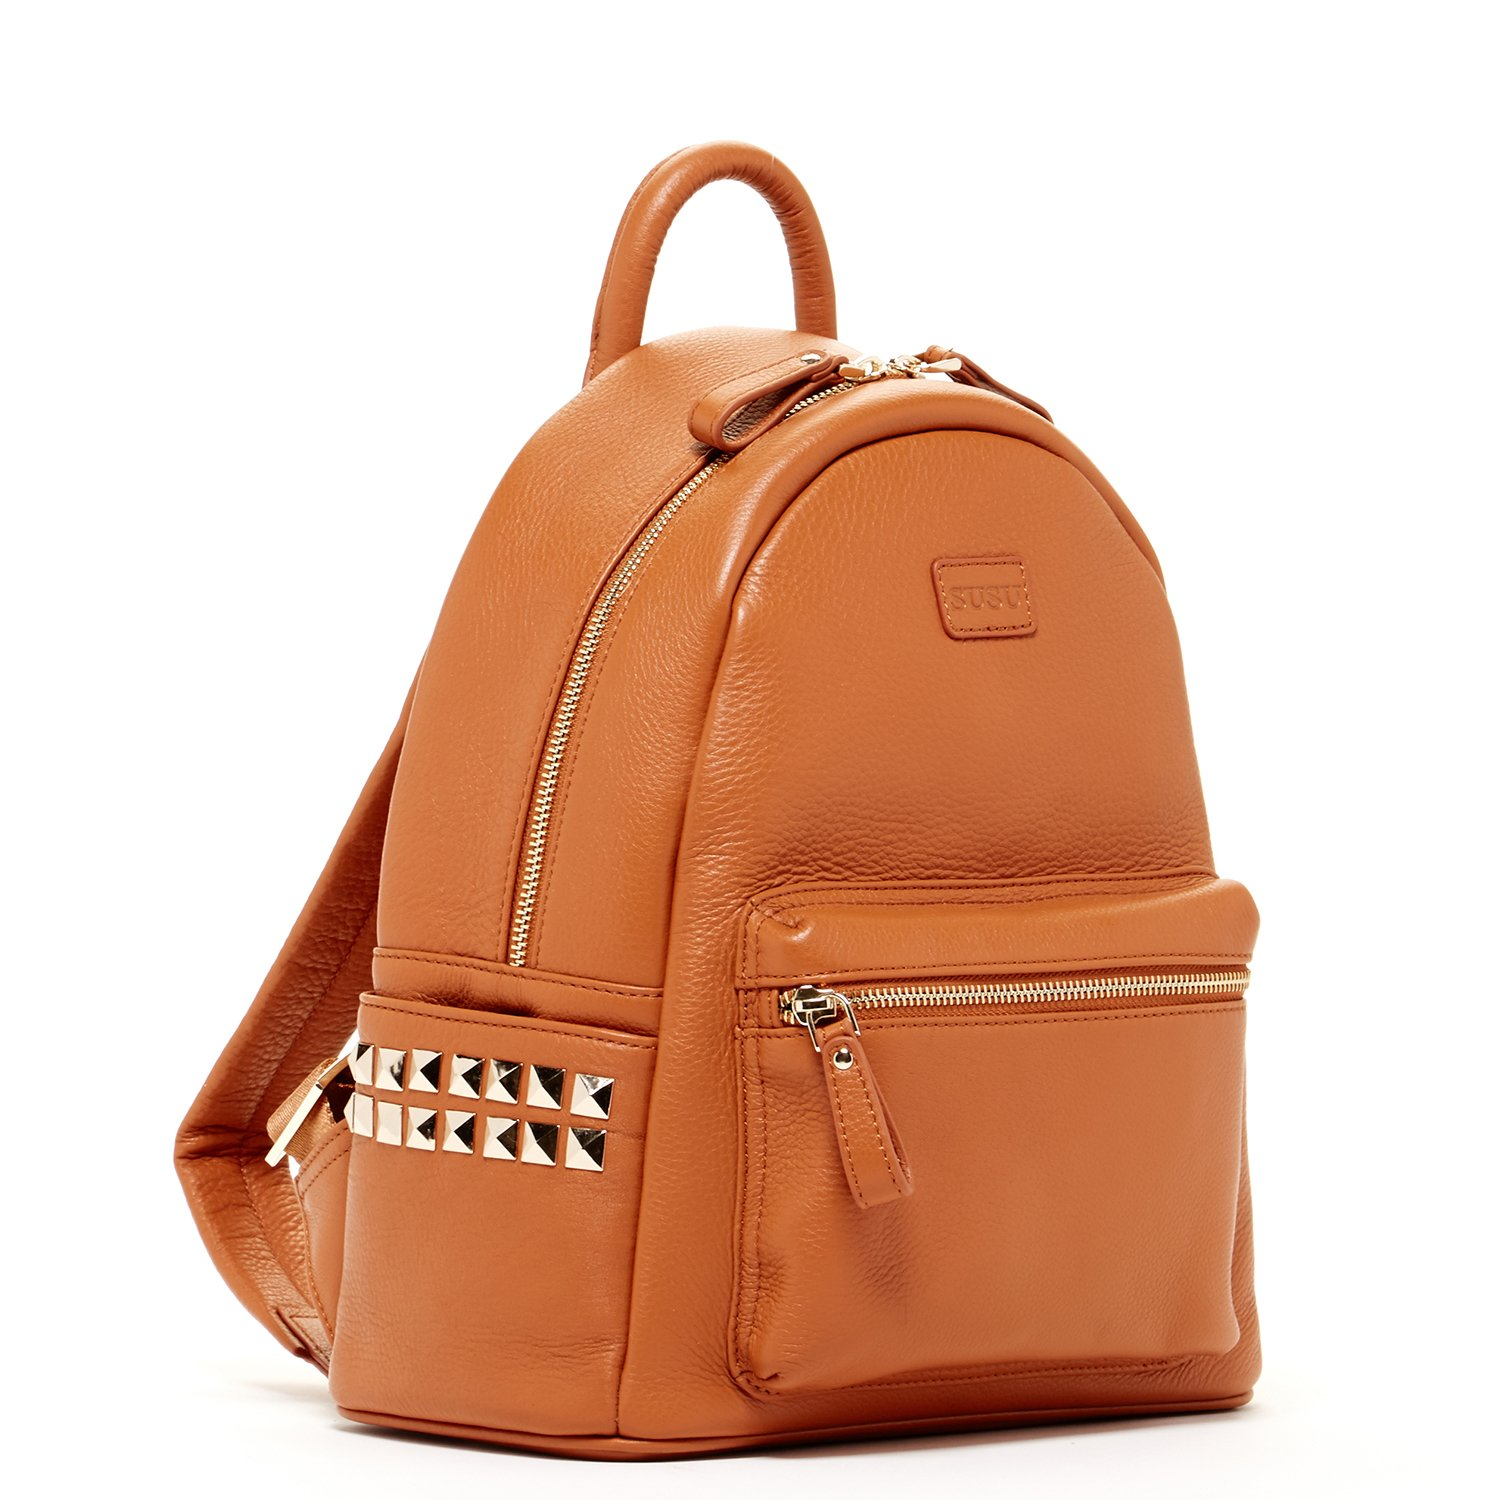 SUSU Brown Pebble Leather Backpack Bags For Women Cute Designer Handbags With Studs and Front Pocket Travel Fashion Backpacks Purses With Side Pockets Quality Rucksack Girlfriend or Wife Birthday Gift by SUSU (Image #2)